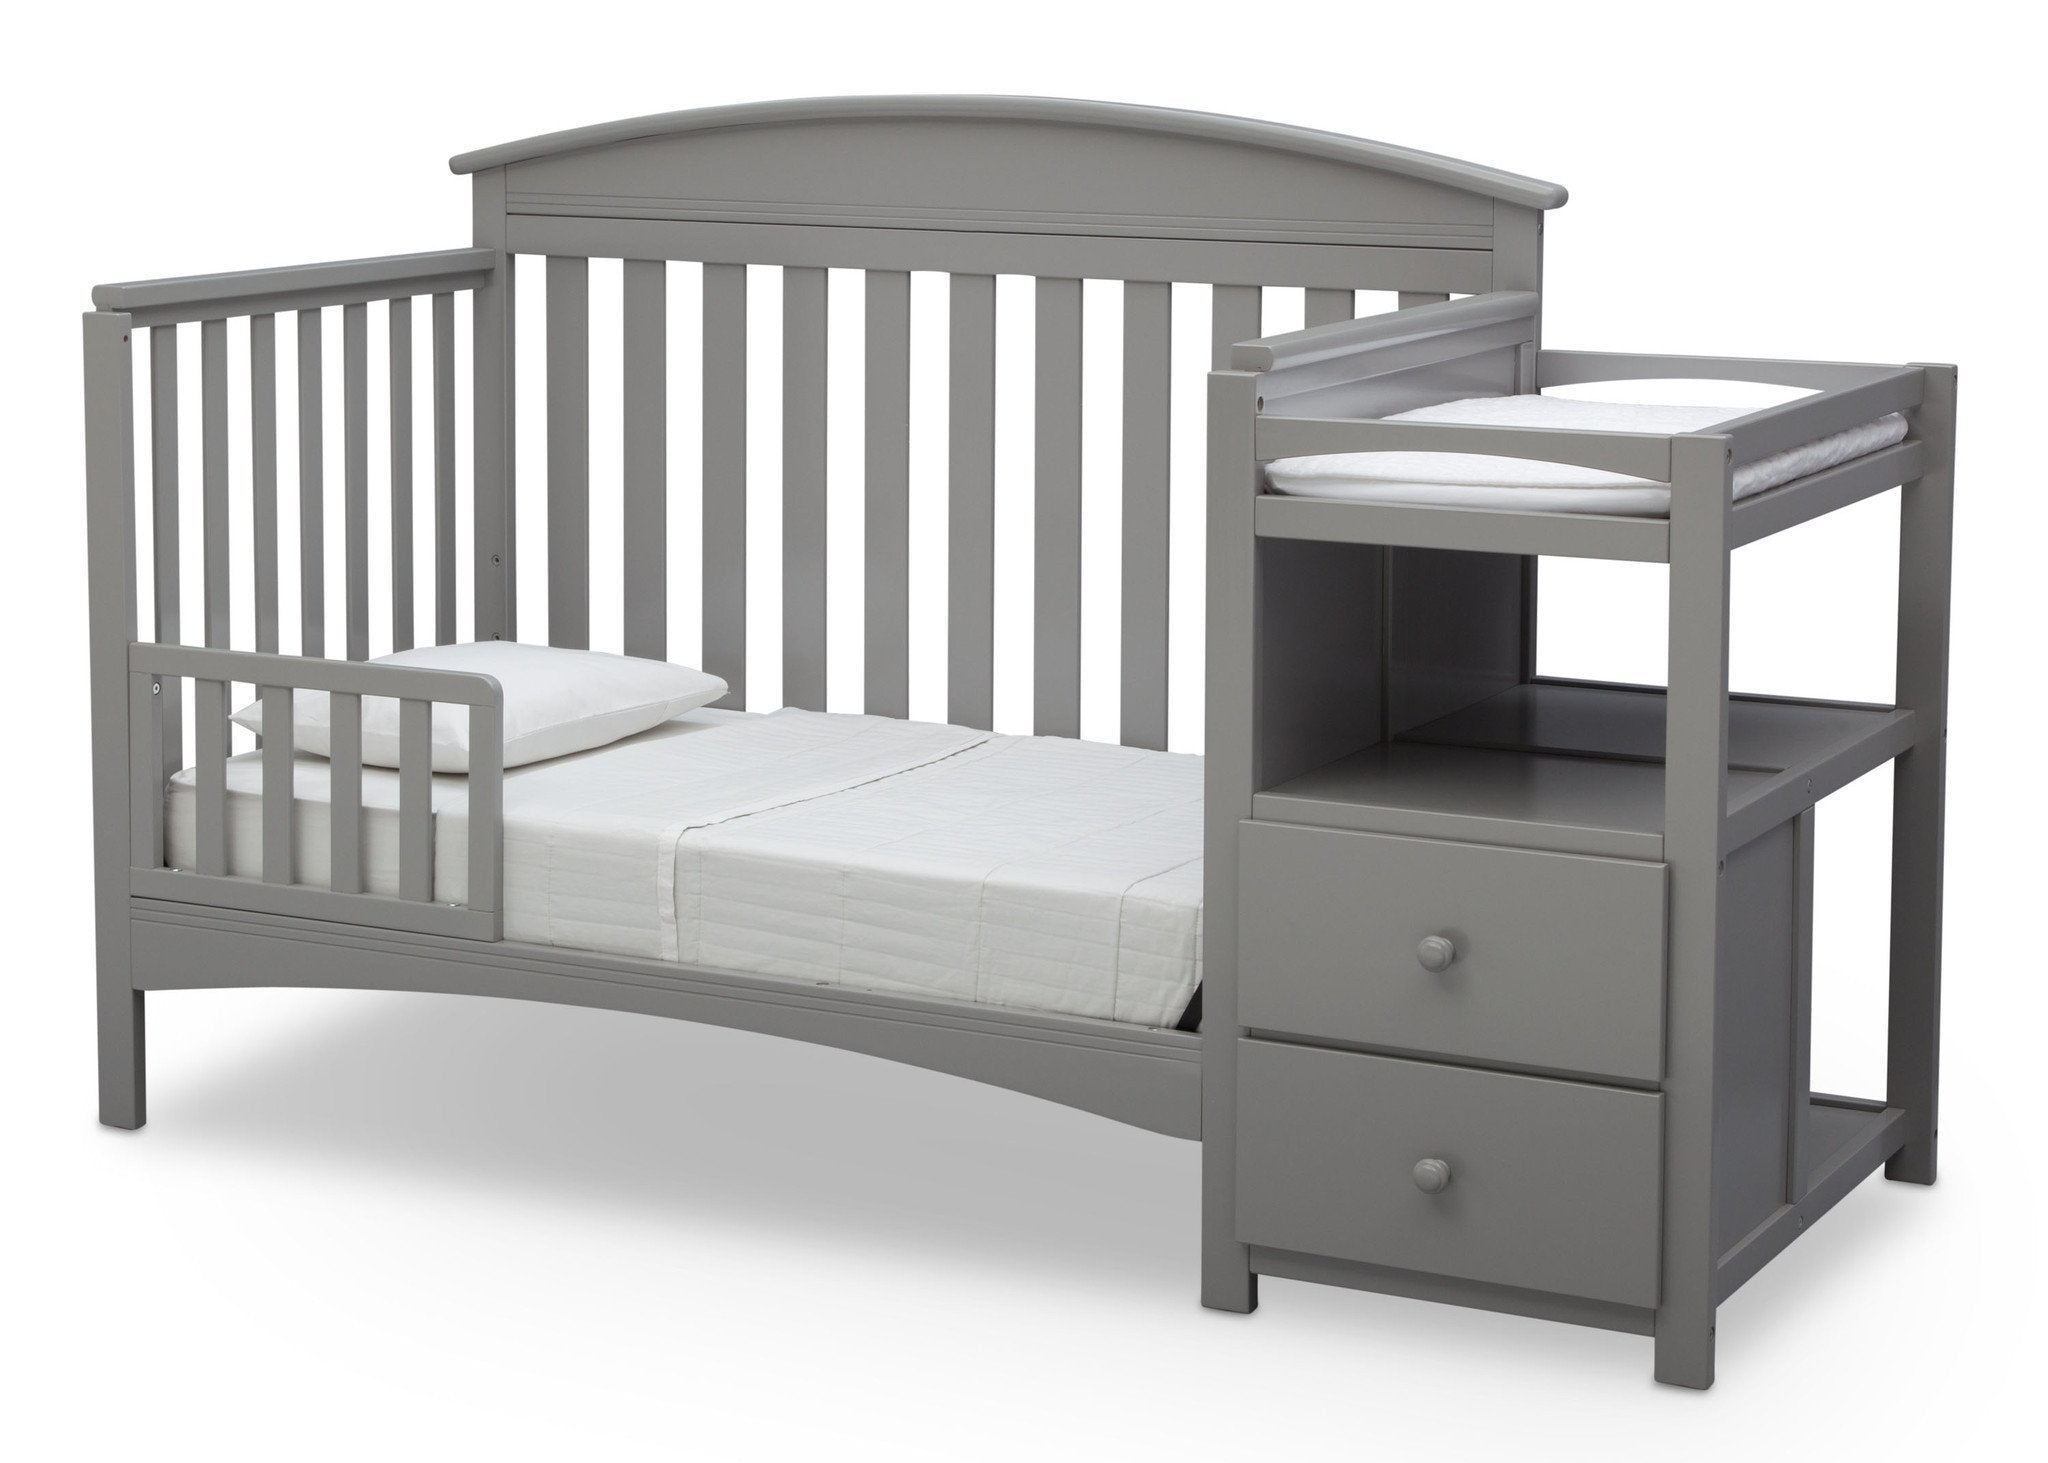 ... Delta Children Grey (026) Abby Crib N Changer Toddler bed a4a ...  sc 1 st  Delta Children & Abby Crib N Changer | Delta Children